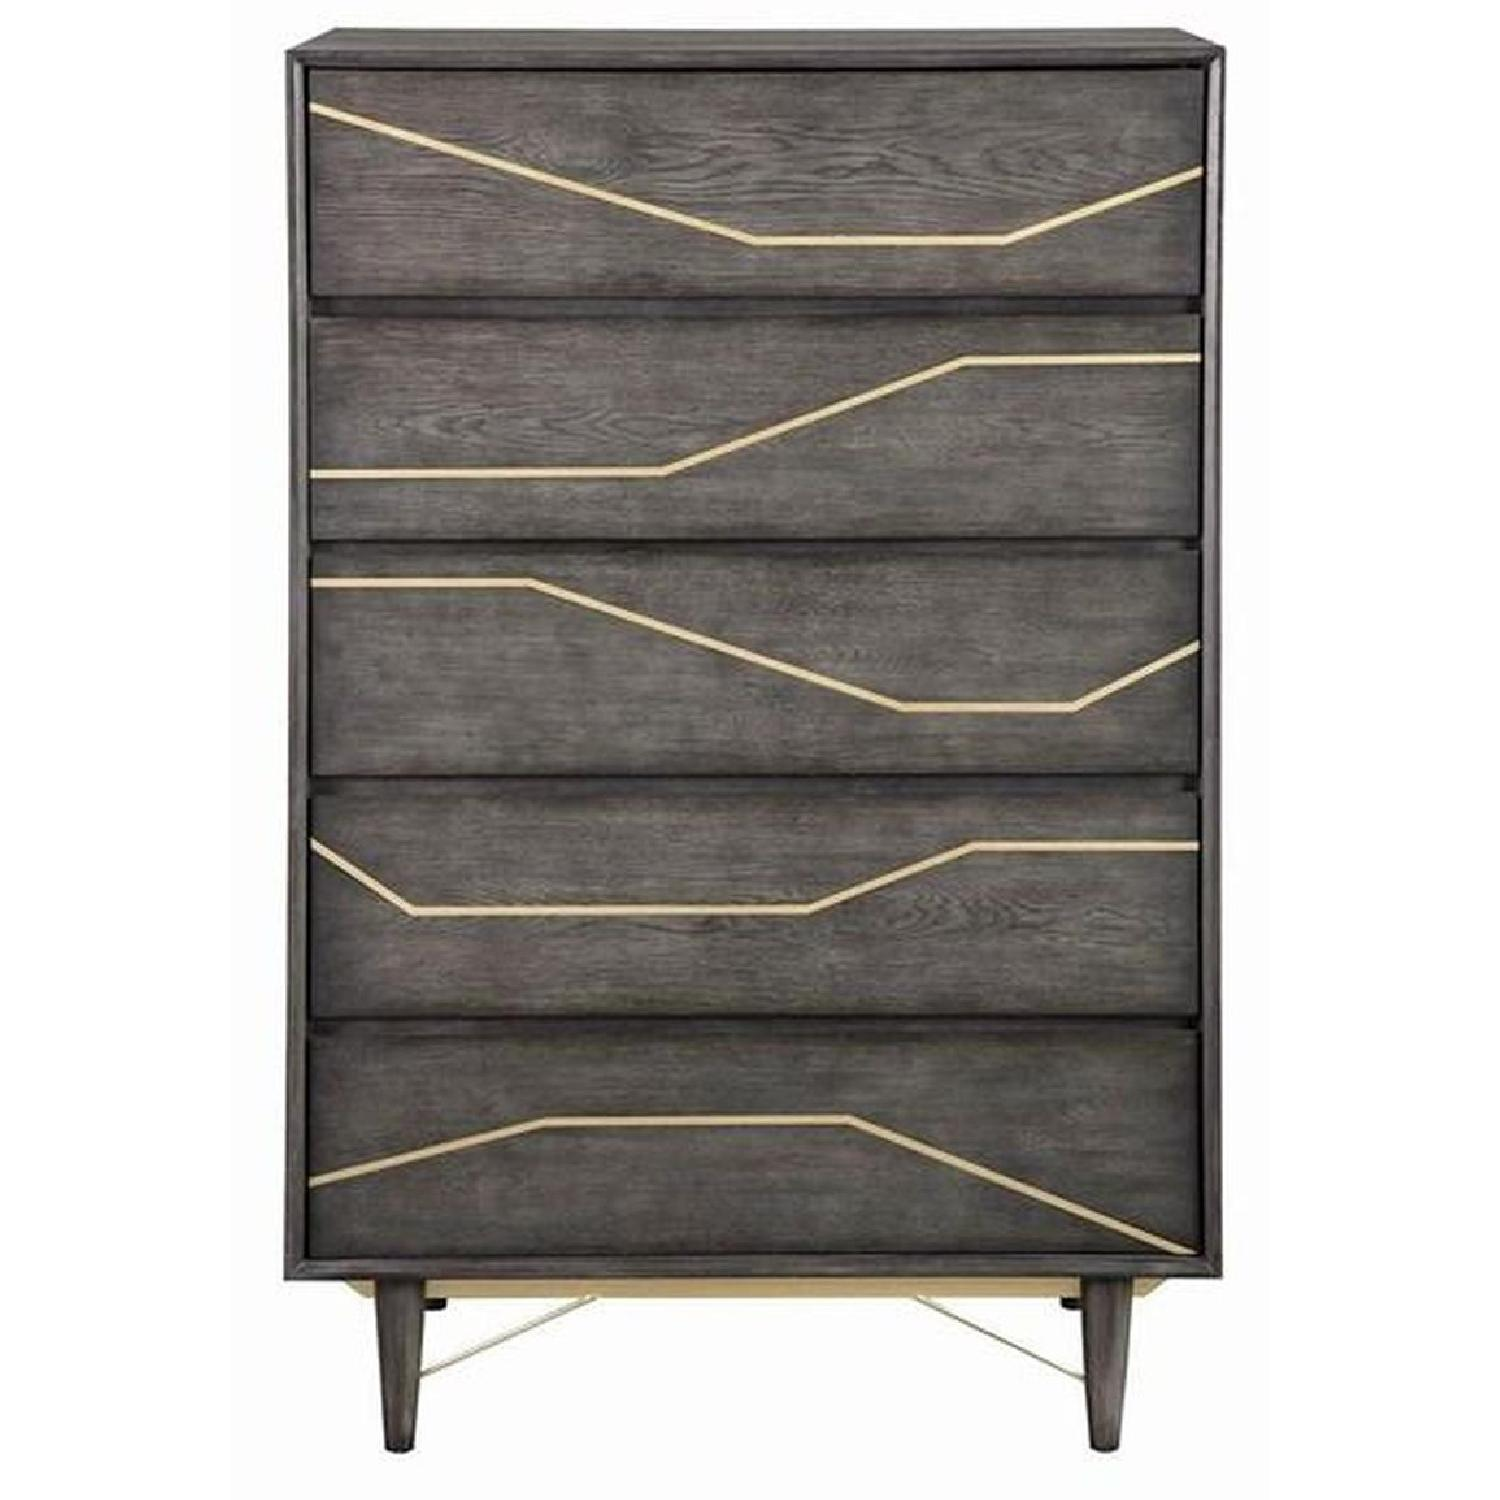 Modern Chest in Graphite Finish w/ Gold Color Inlay - image-0